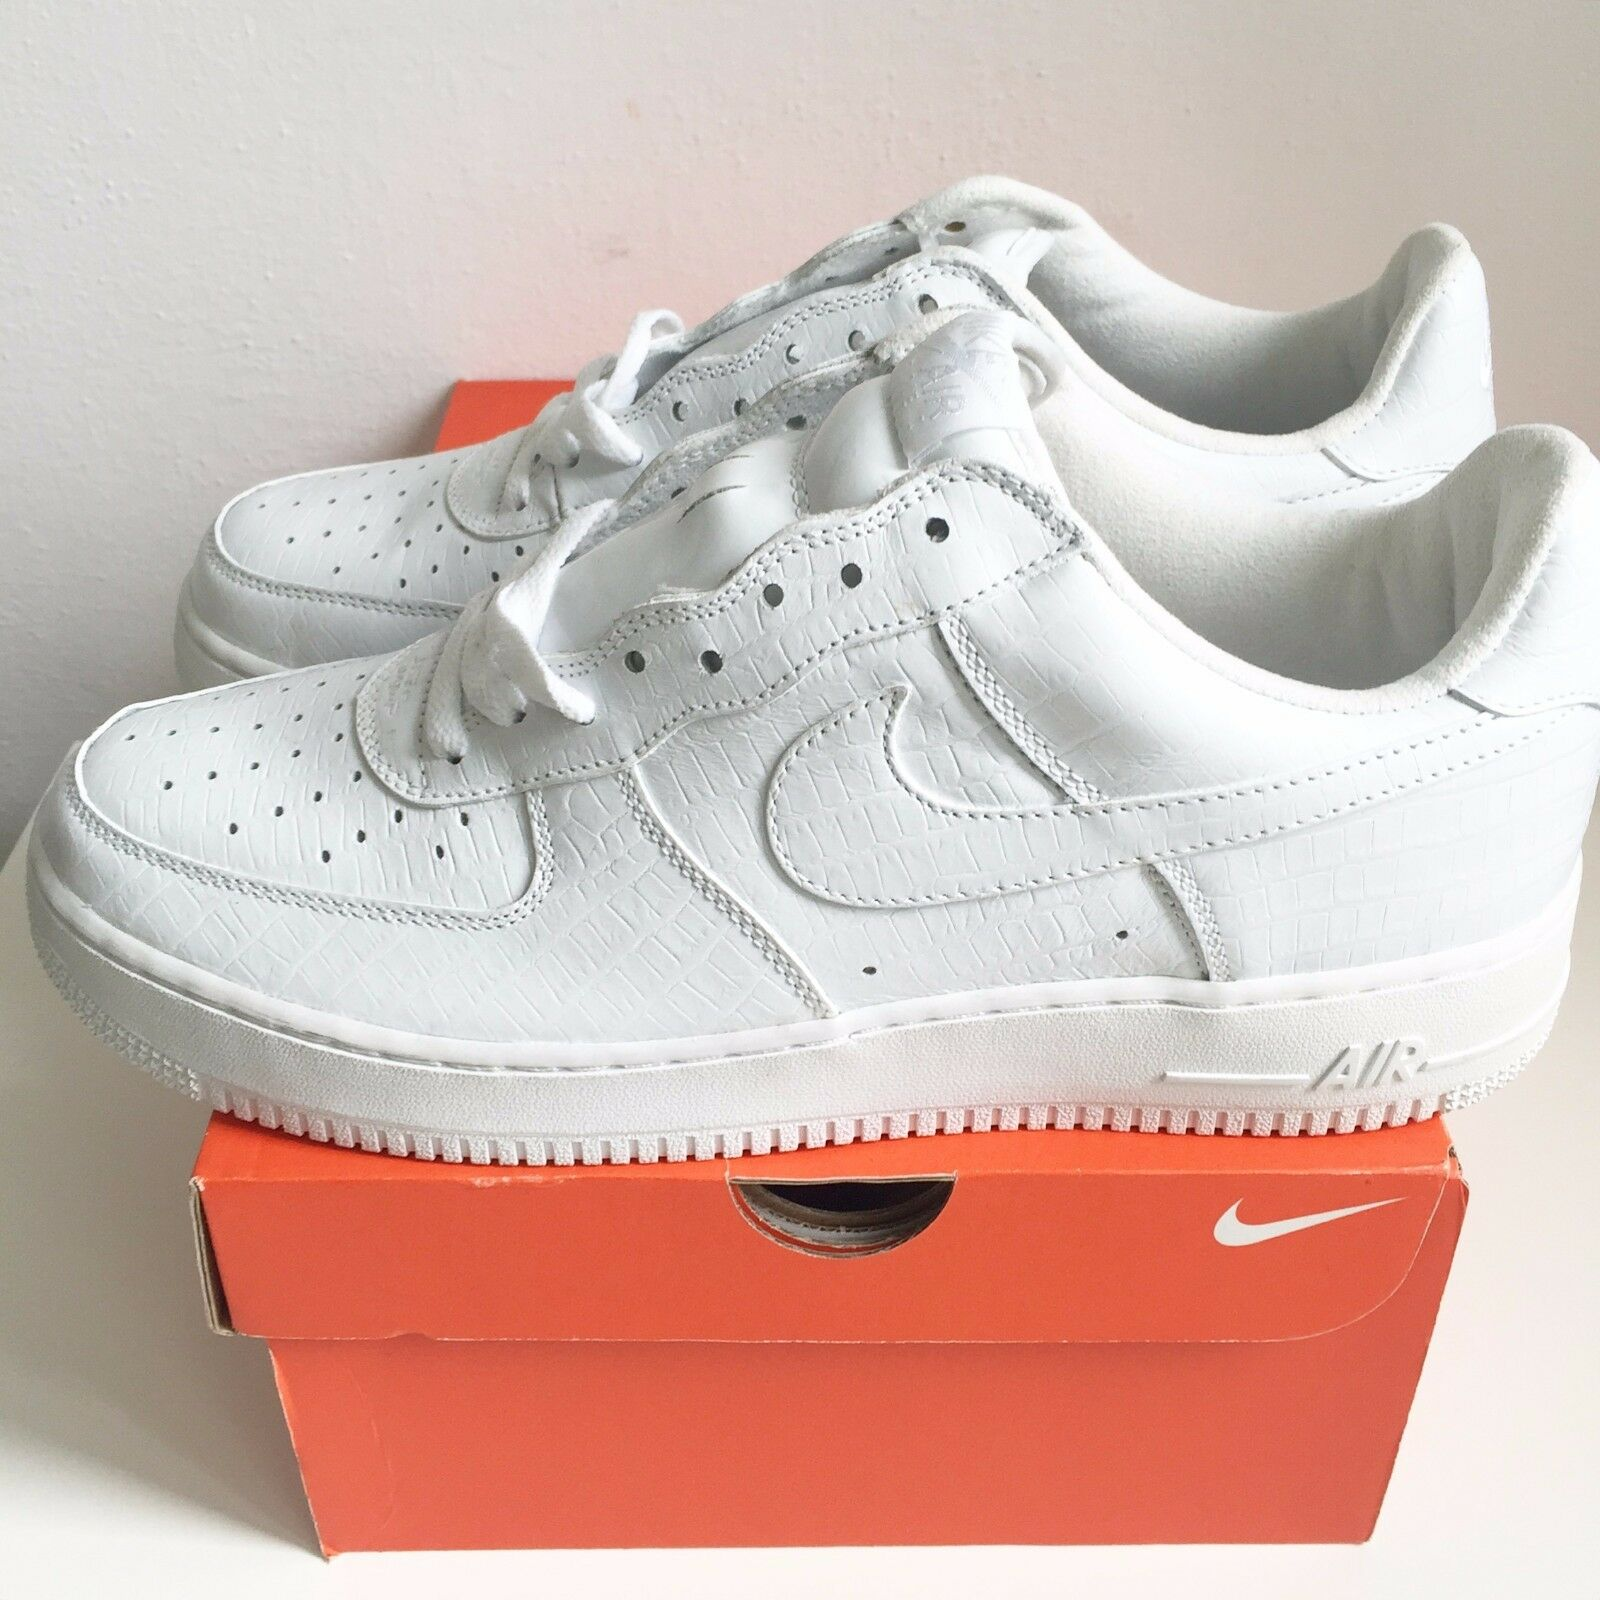 Nike Air Force 1 ONE LOW US10.5 'White HTM 2' 2004 US10.5 LOW UK9.5 EUR44.5 CM28.5 b4fd65